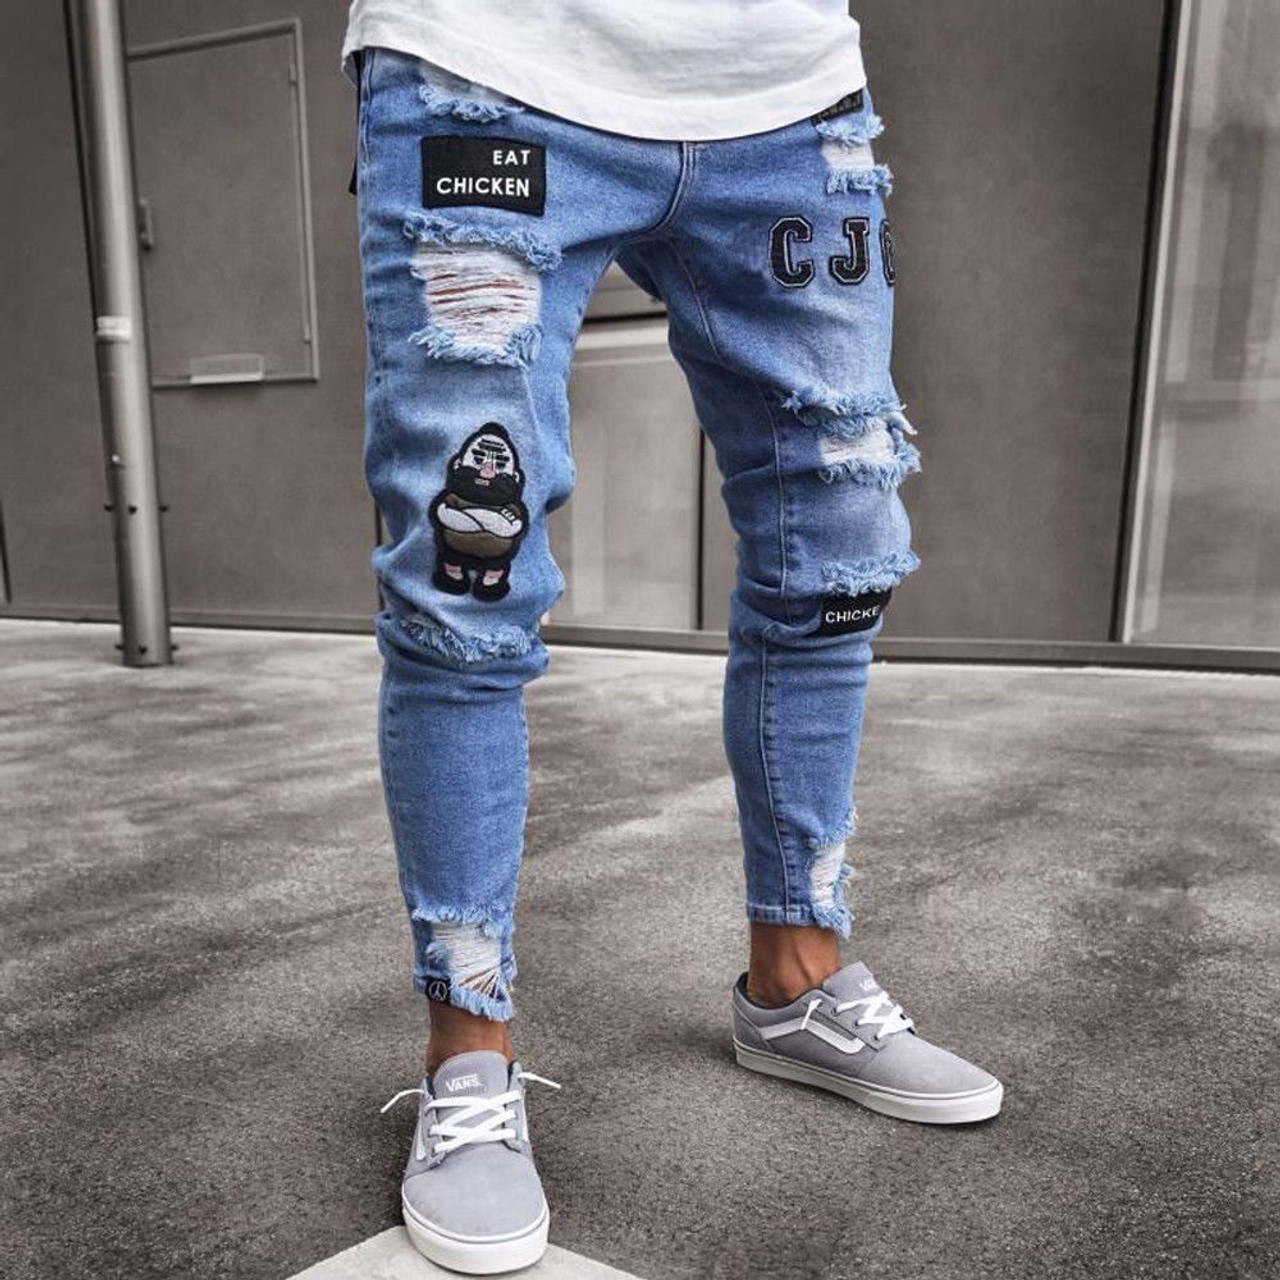 Hirigin 2018 Jeans Men Fear Of Gold Skinny Jeans Fashion Biker Steetwear  Distressed Ripped Denim Pencil Style Slim Mens Clothes - OnshopDeals.Com